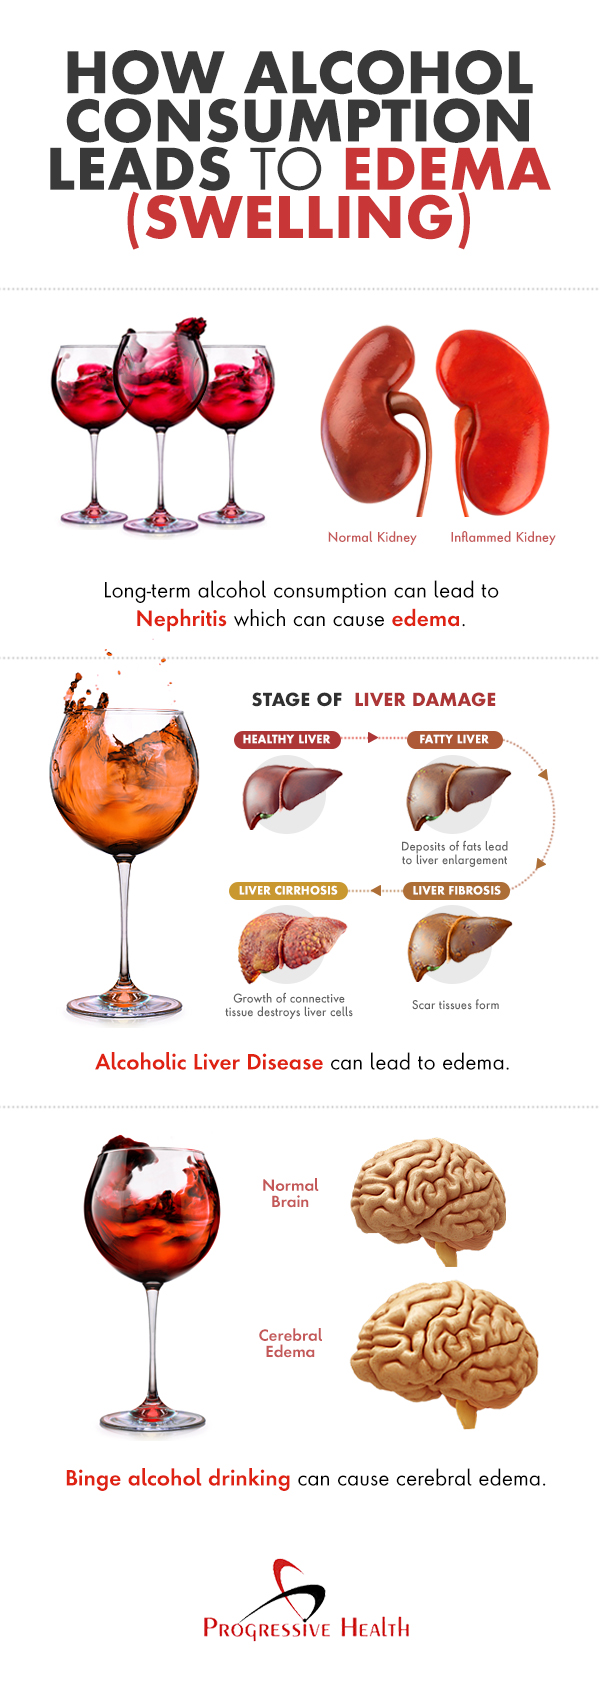 How Alcohol Consumption Leads to Edema (Swelling)